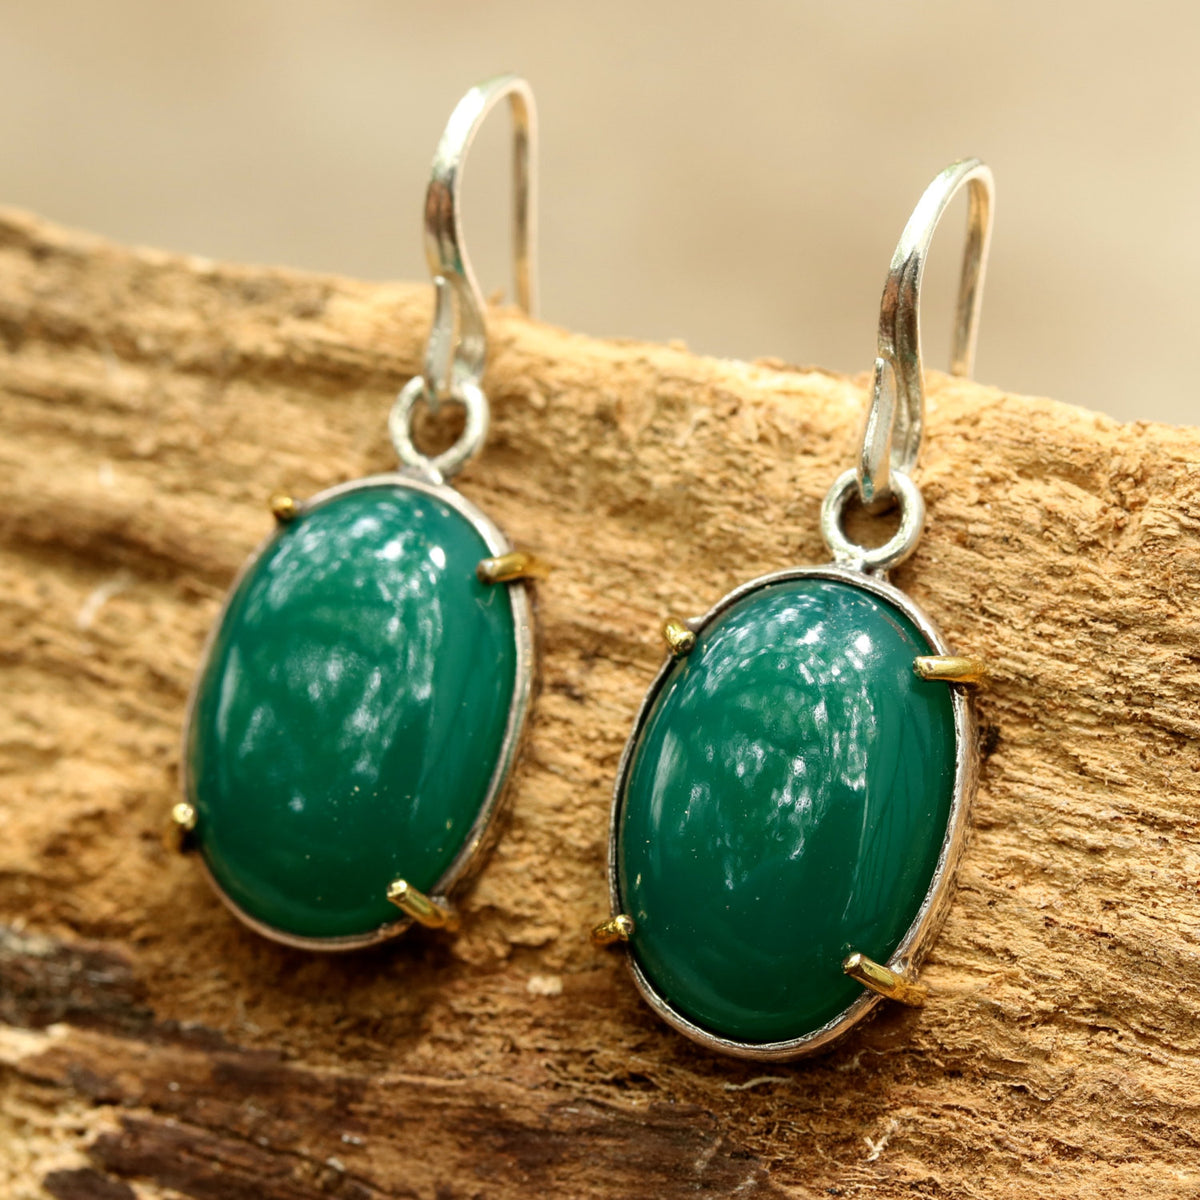 Green onyx cabochon earrings in silver bezel setting with polished brass accent prongs(FBA)